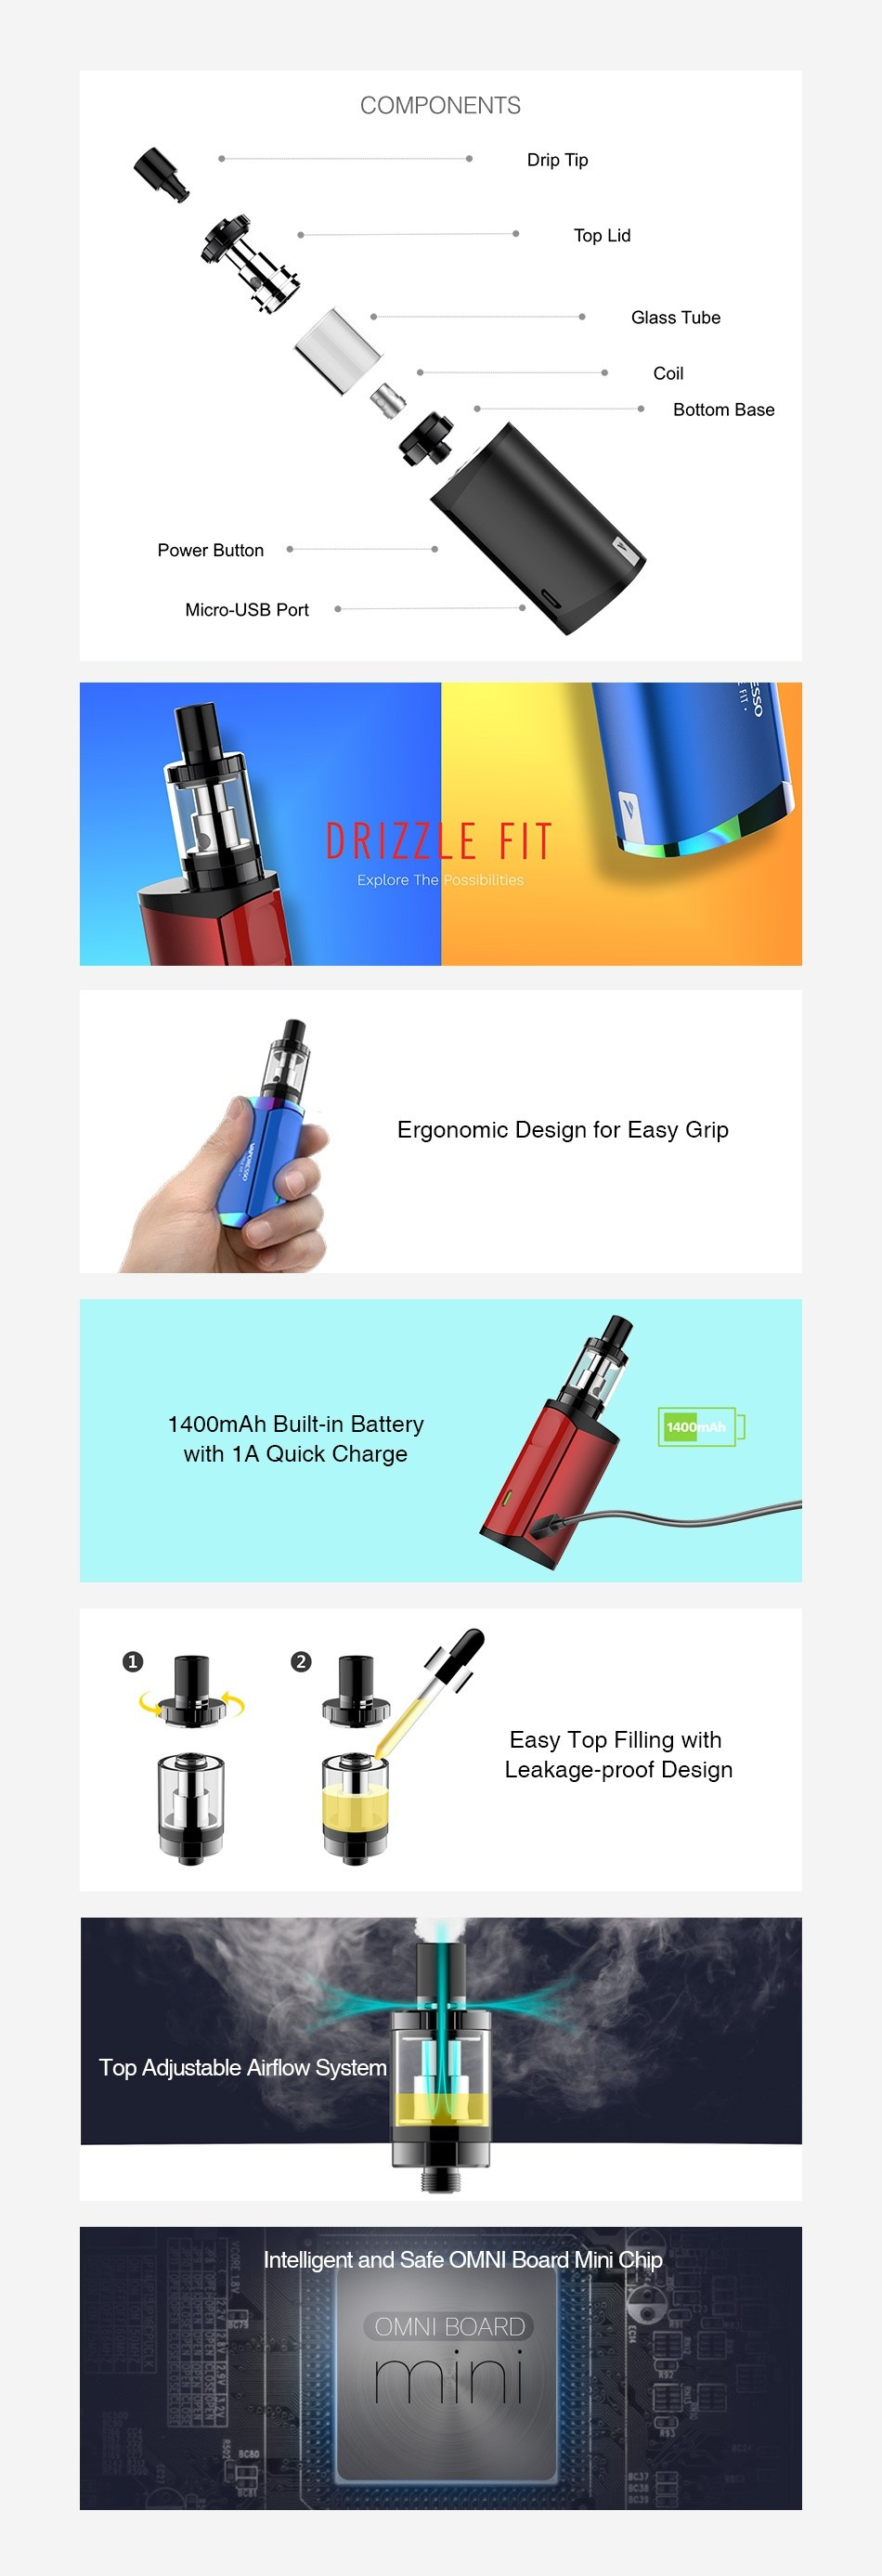 Vaporesso Drizzle Fit Kit Black and Green - Mighty Vape